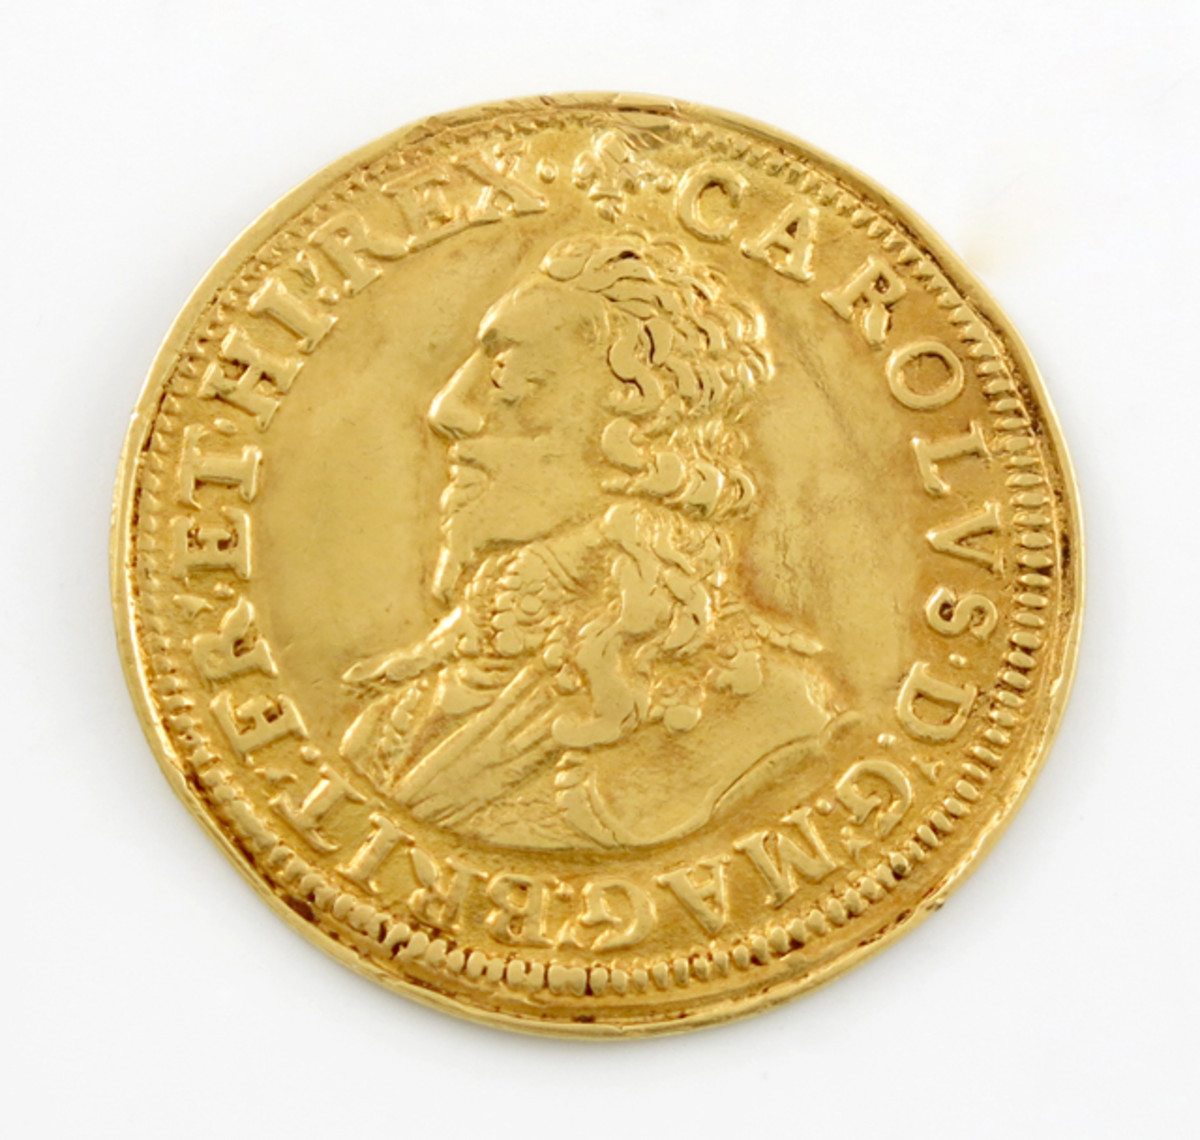 Extremely rare Charles I pattern gold unite, by Abraham Vanderdoort. The legend on the reverse, FLORENT CONCORDIA REGNA [United kingdoms flourish], appears on all of Charles' Tower Mint-struck gold and refers to the unification of England, Ireland and Scotland under the Stuarts. However, the lis mintmark is unusual on a Tower coin. In VF the coin carries an estimate of  £8,000 – £10,000.